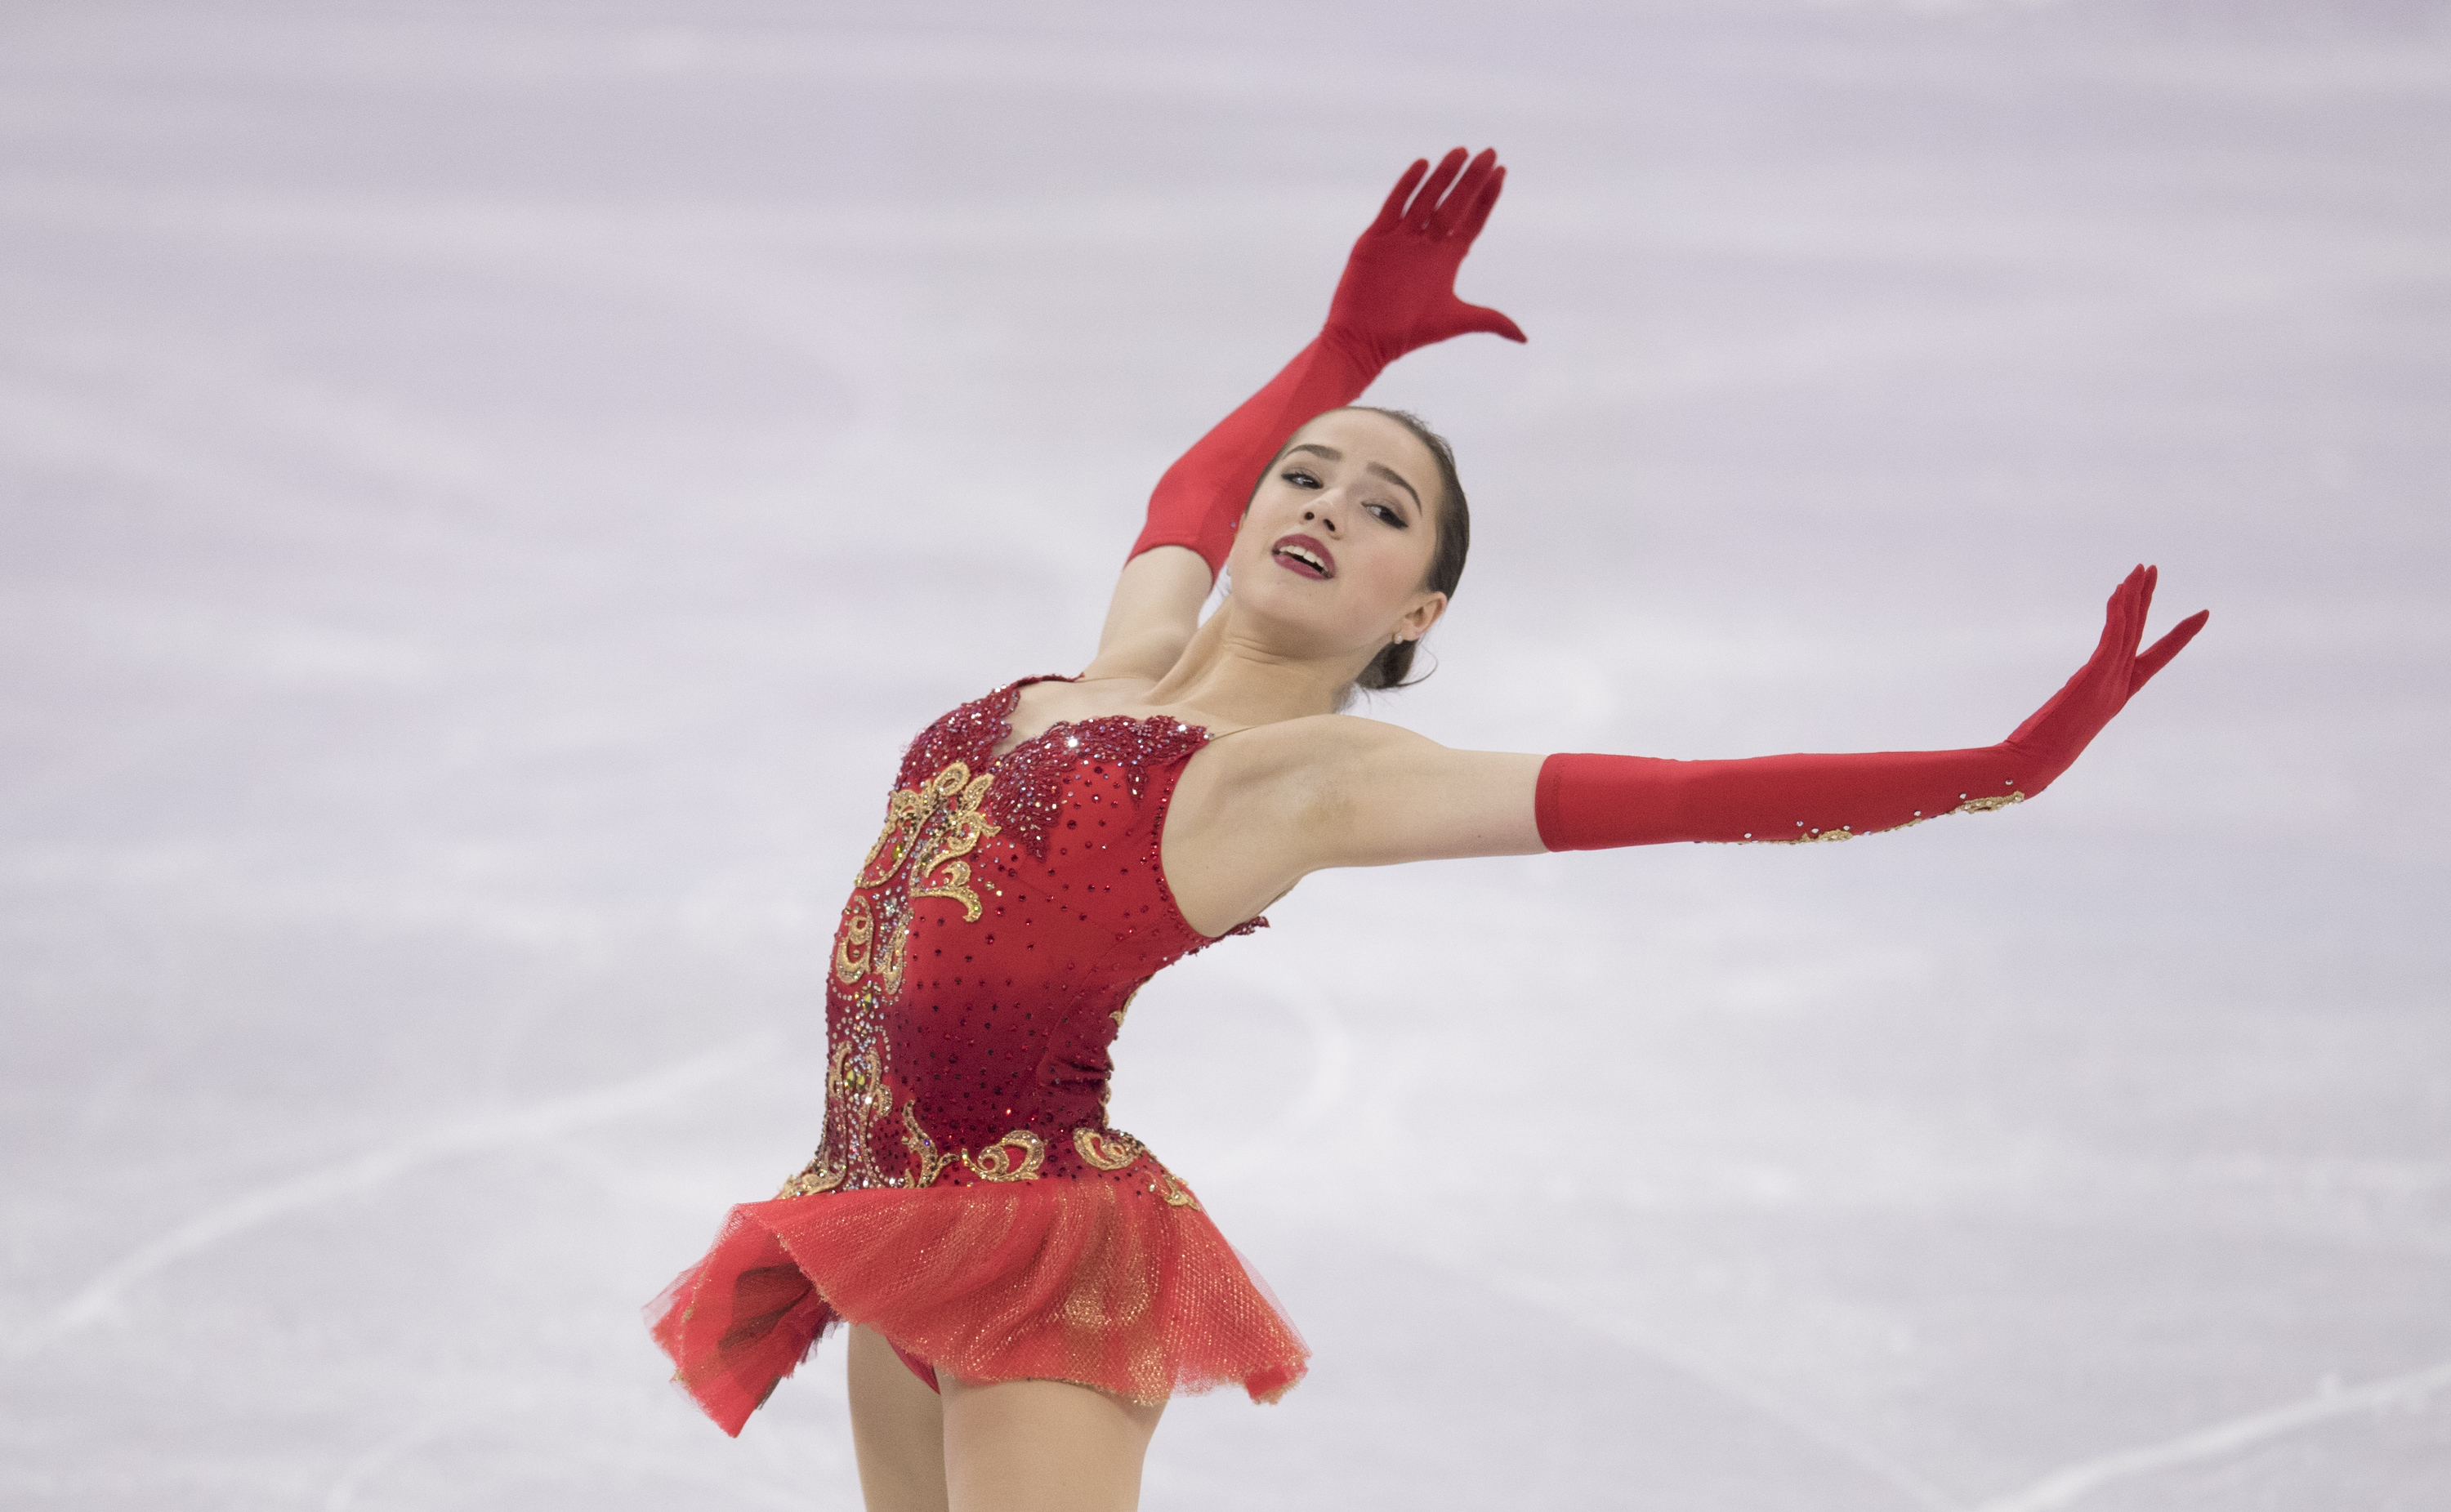 Alina Zagitova of Olympic Athlete from Russia competes in the Figure Skating Team Event on day three of the PyeongChang 2018 Winter Olympic Games at Gangneung Ice Arena in Gangneung, South Korea on February 12, 2018.